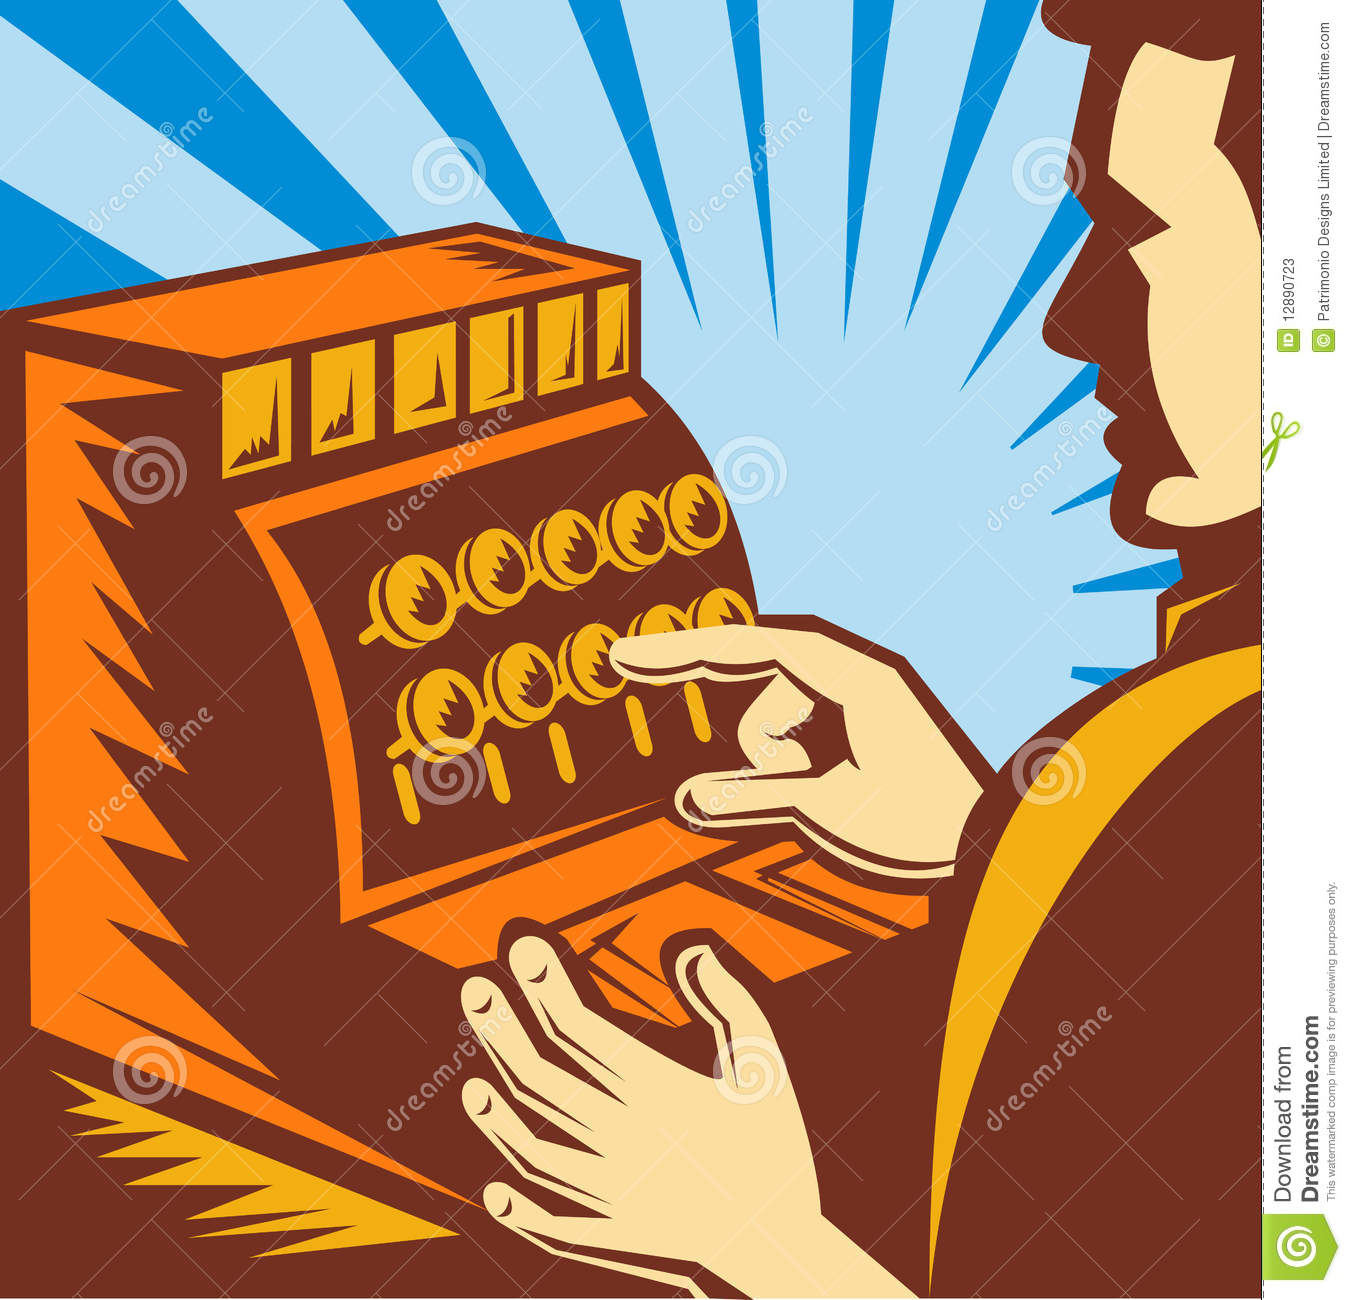 Till Or Cash Register Cartoon Clip Art Stock Vector - Image: 45140106